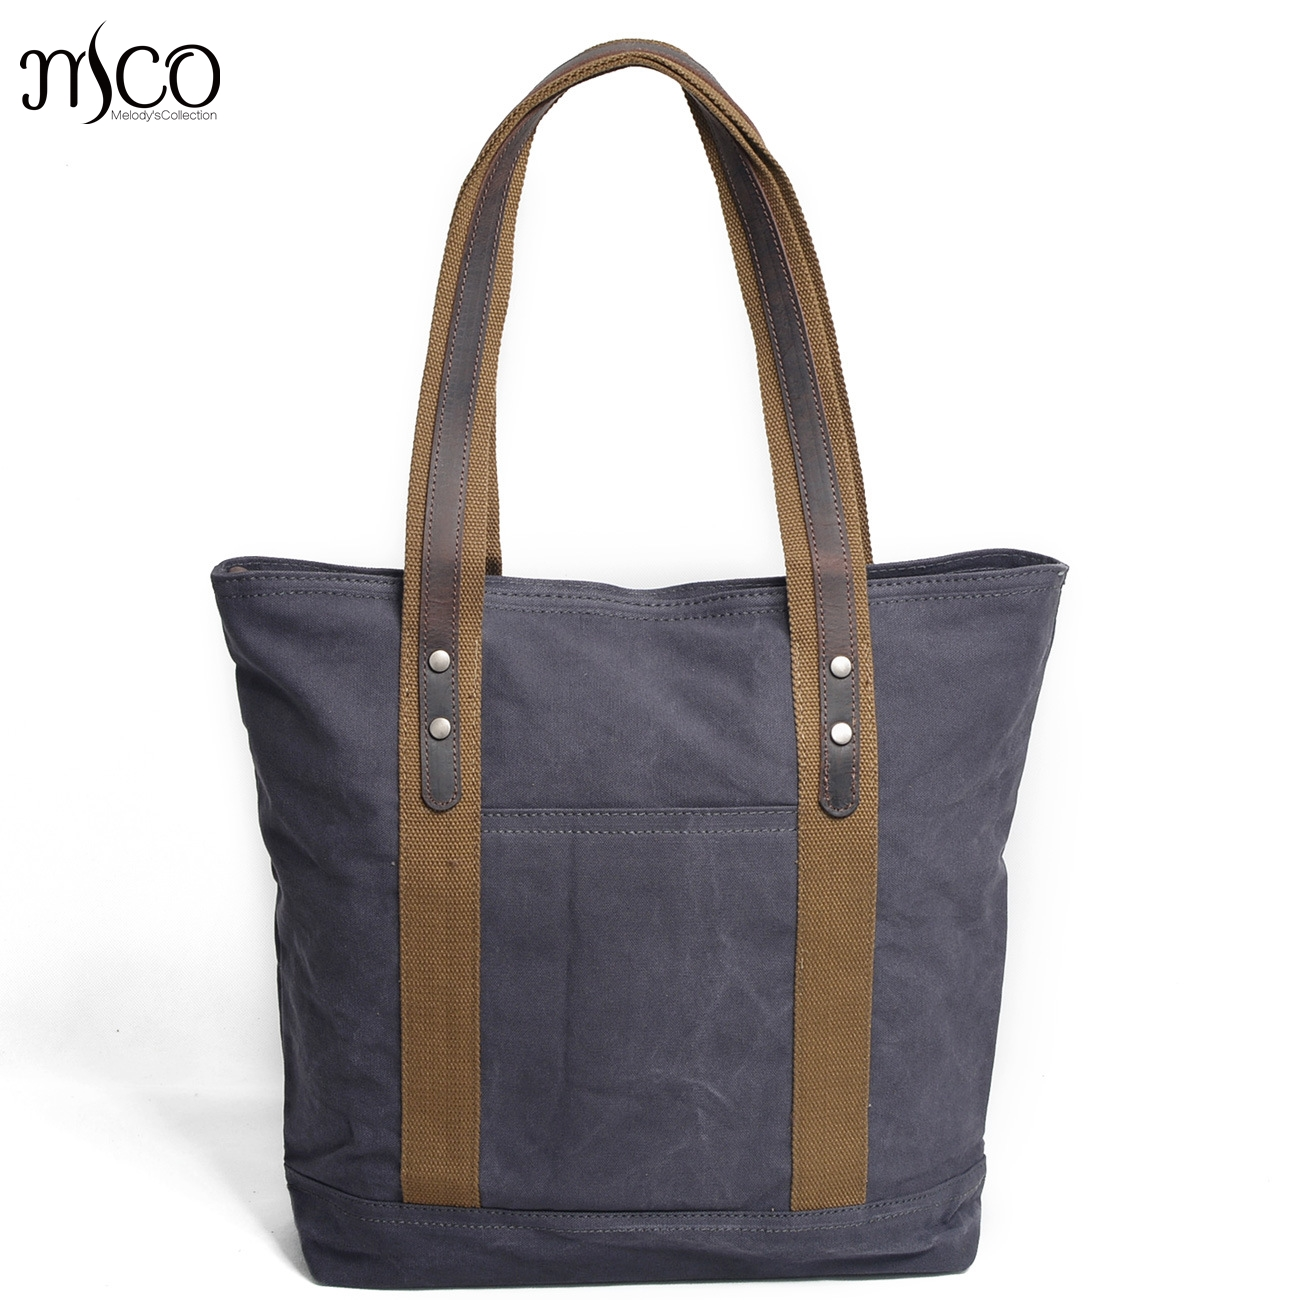 Melodycollection Brands Canvas Shopping Women Handbag Man School Bag Female Tote Lady Luxury Women Shoulder Bags women canvas stripe tote bags casual shopping bags simple shoulder bags lady handtassen sac bandouliere bolso mujer clutch